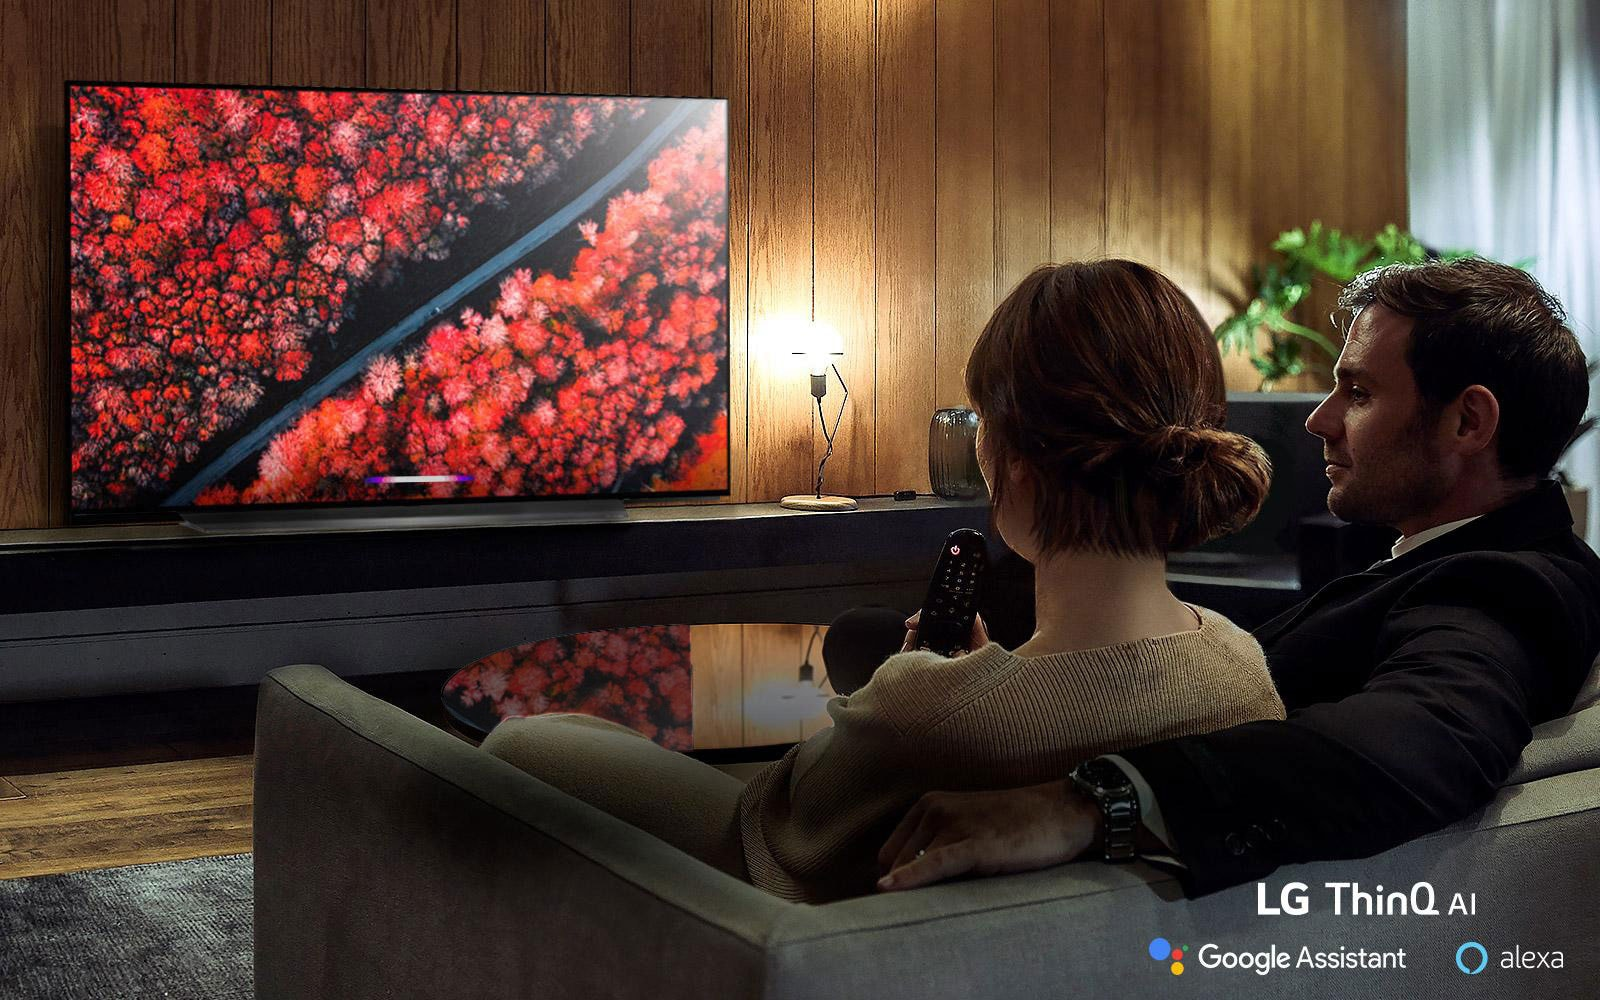 Introducing a more intelligent TV with LG ThinQ® AI3